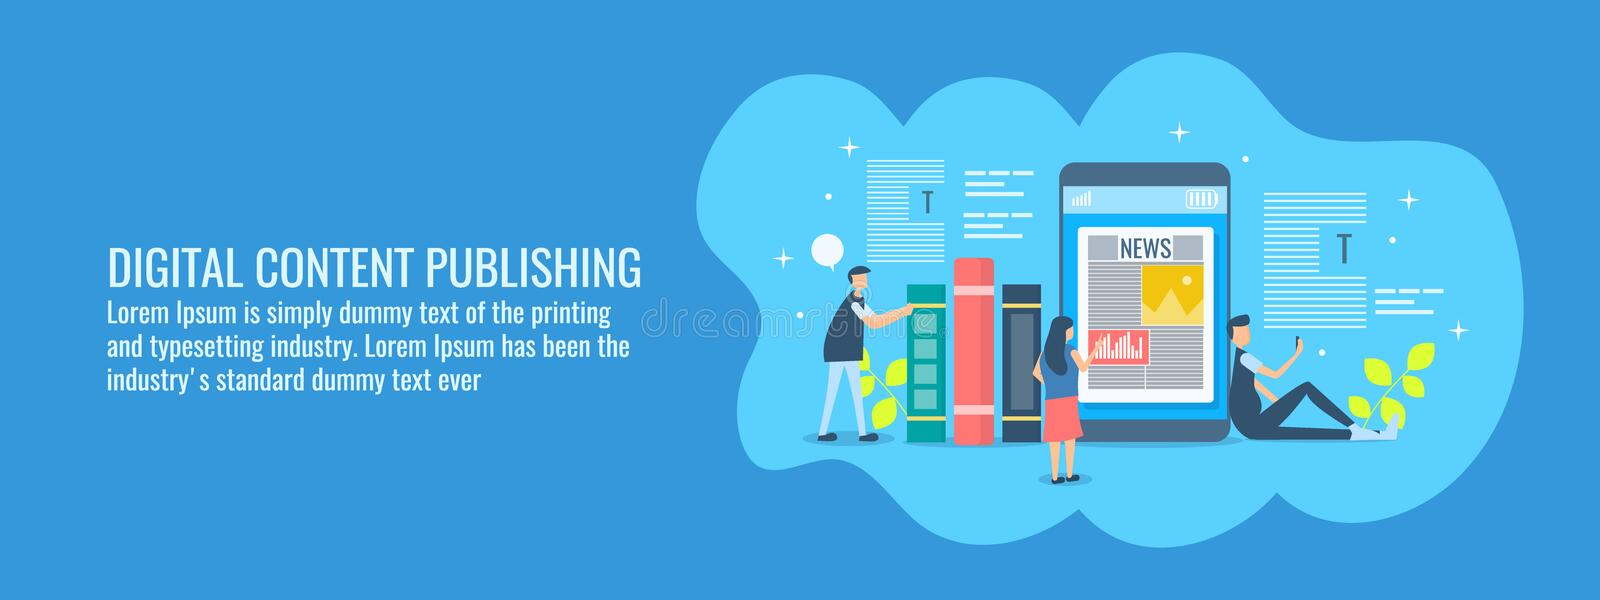 Digital content publishing, people engage with online test, video, image content, reading ebooks on smart phones. Flat banner. stock illustration